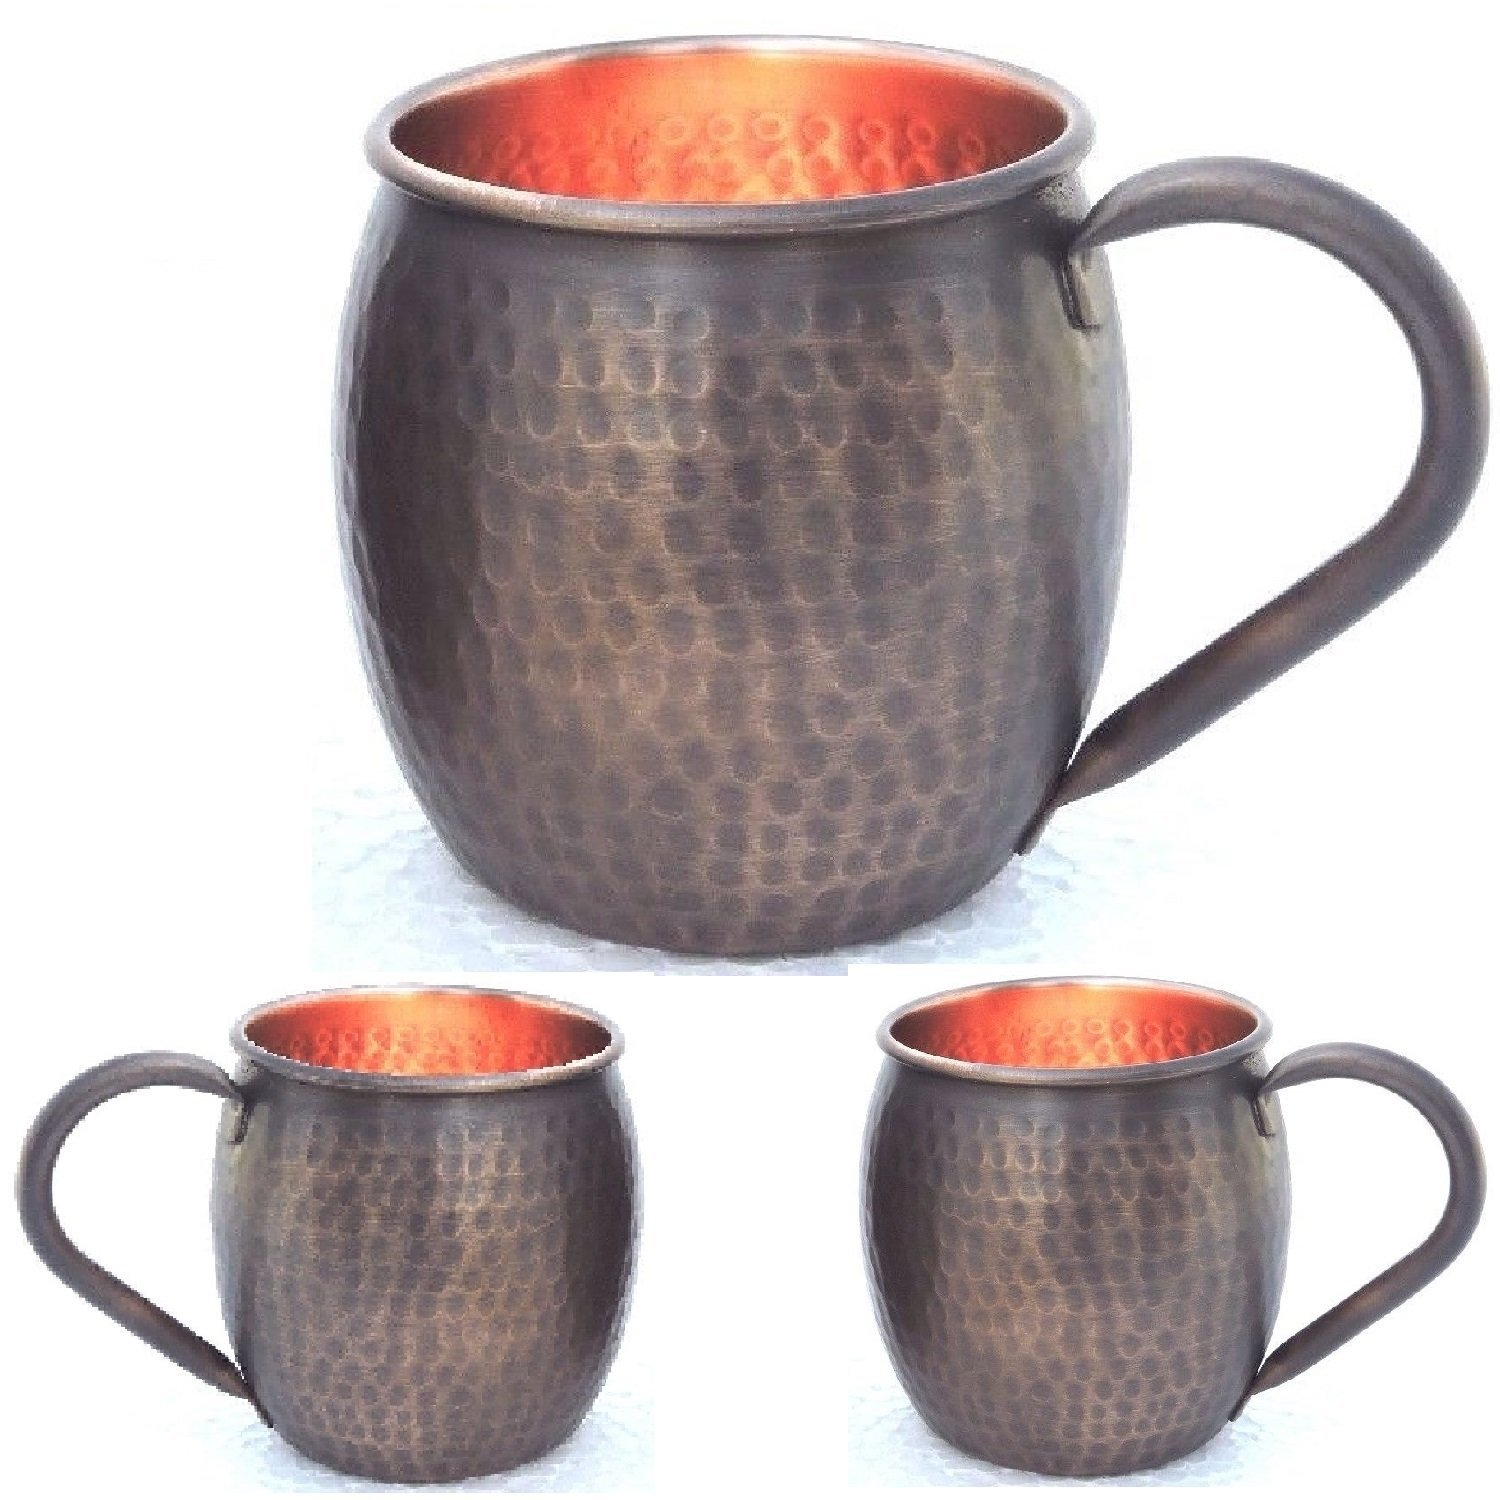 Staglife Copper Mugs and Copper Cups for Moscow Mules | Moscow Mule Mugs Black Matte Antique Hammered Collection 2018